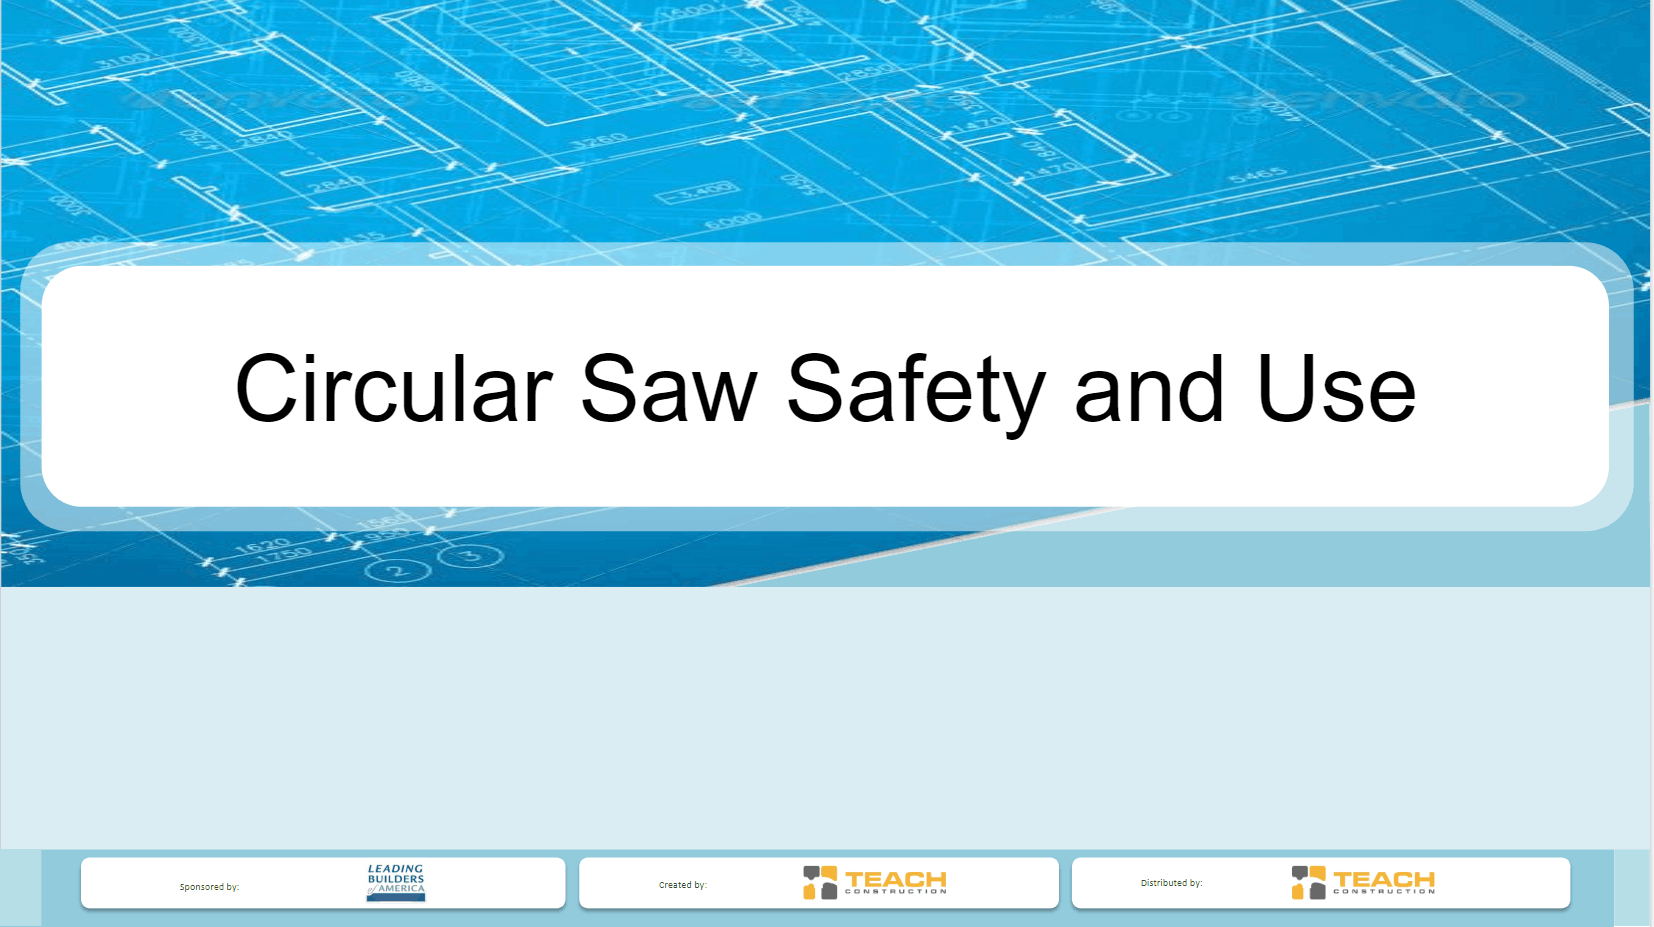 Circular Saw Safety and Use Presentation Image